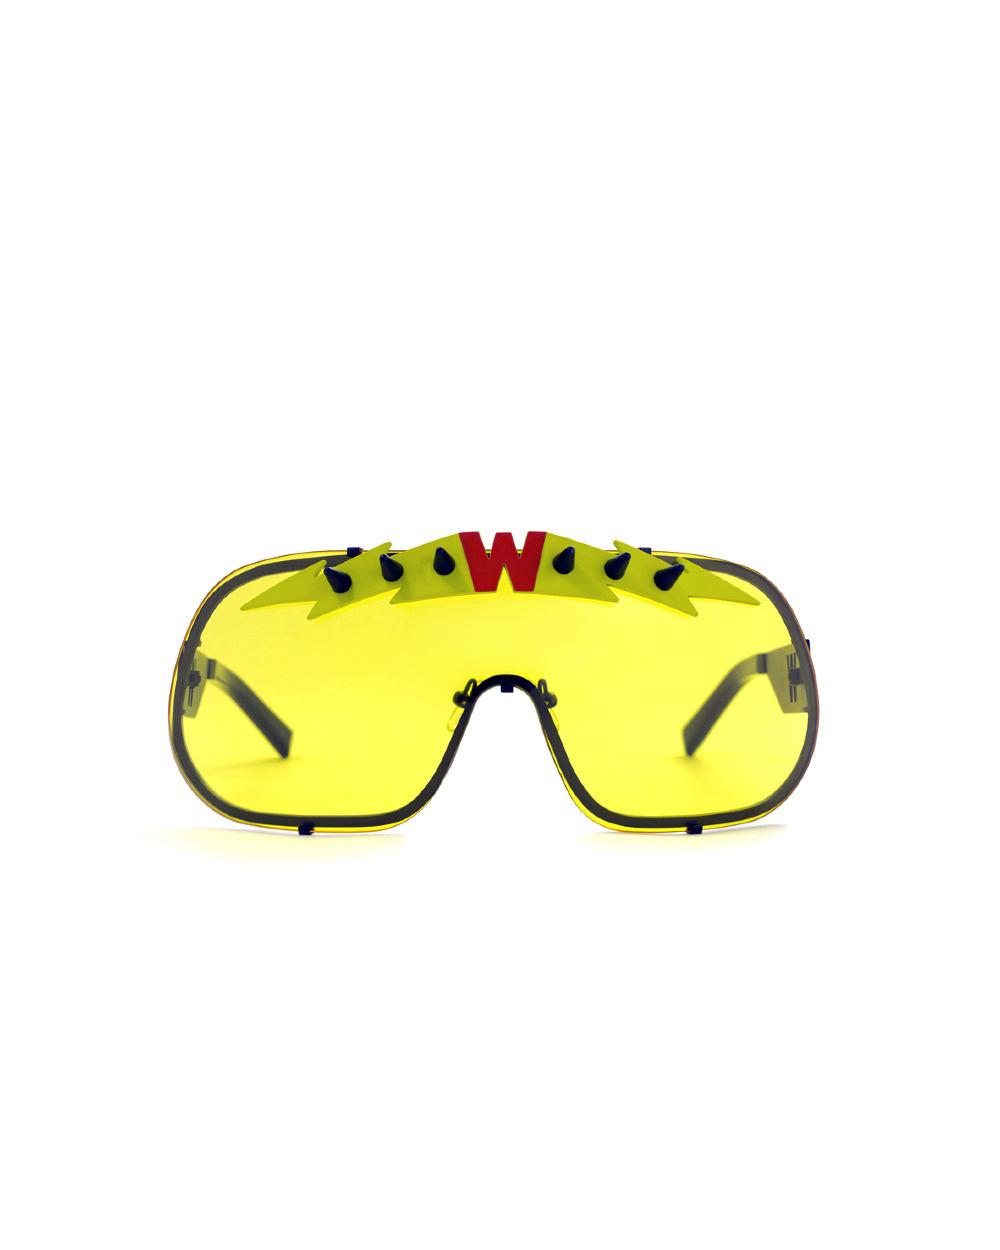 BlitZ Solar Shield Sunglasses. Yellow & Neon Lightning